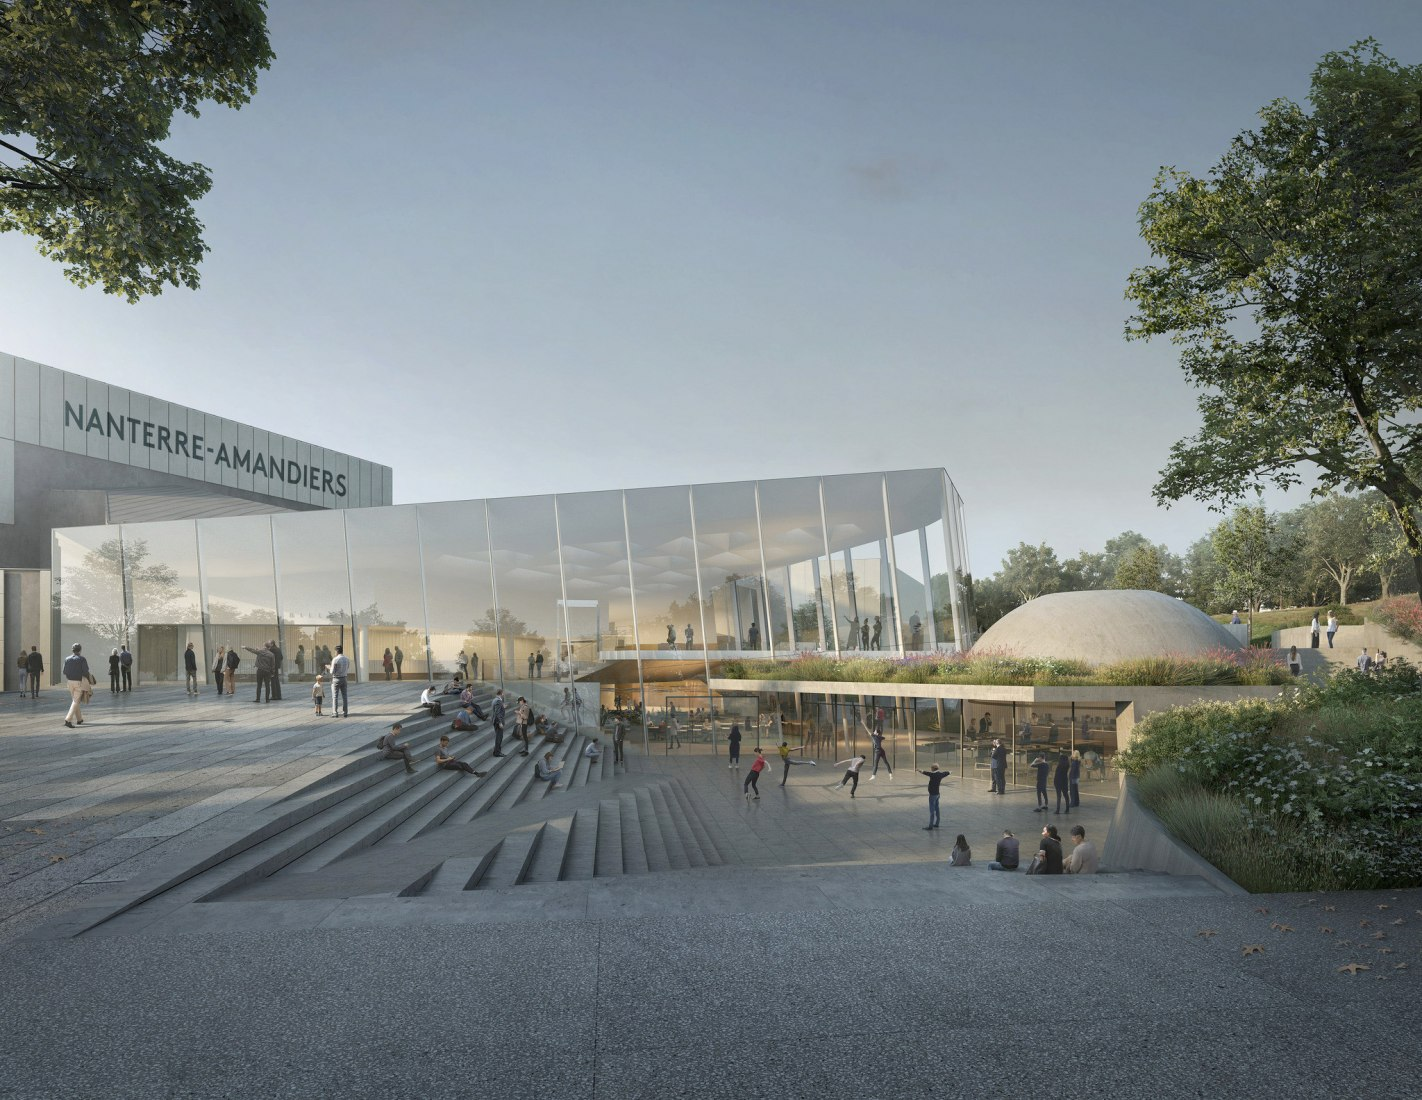 Exterior rendering. Renovation of the Théâtre Nanterre-Amandiers by Snøhetta